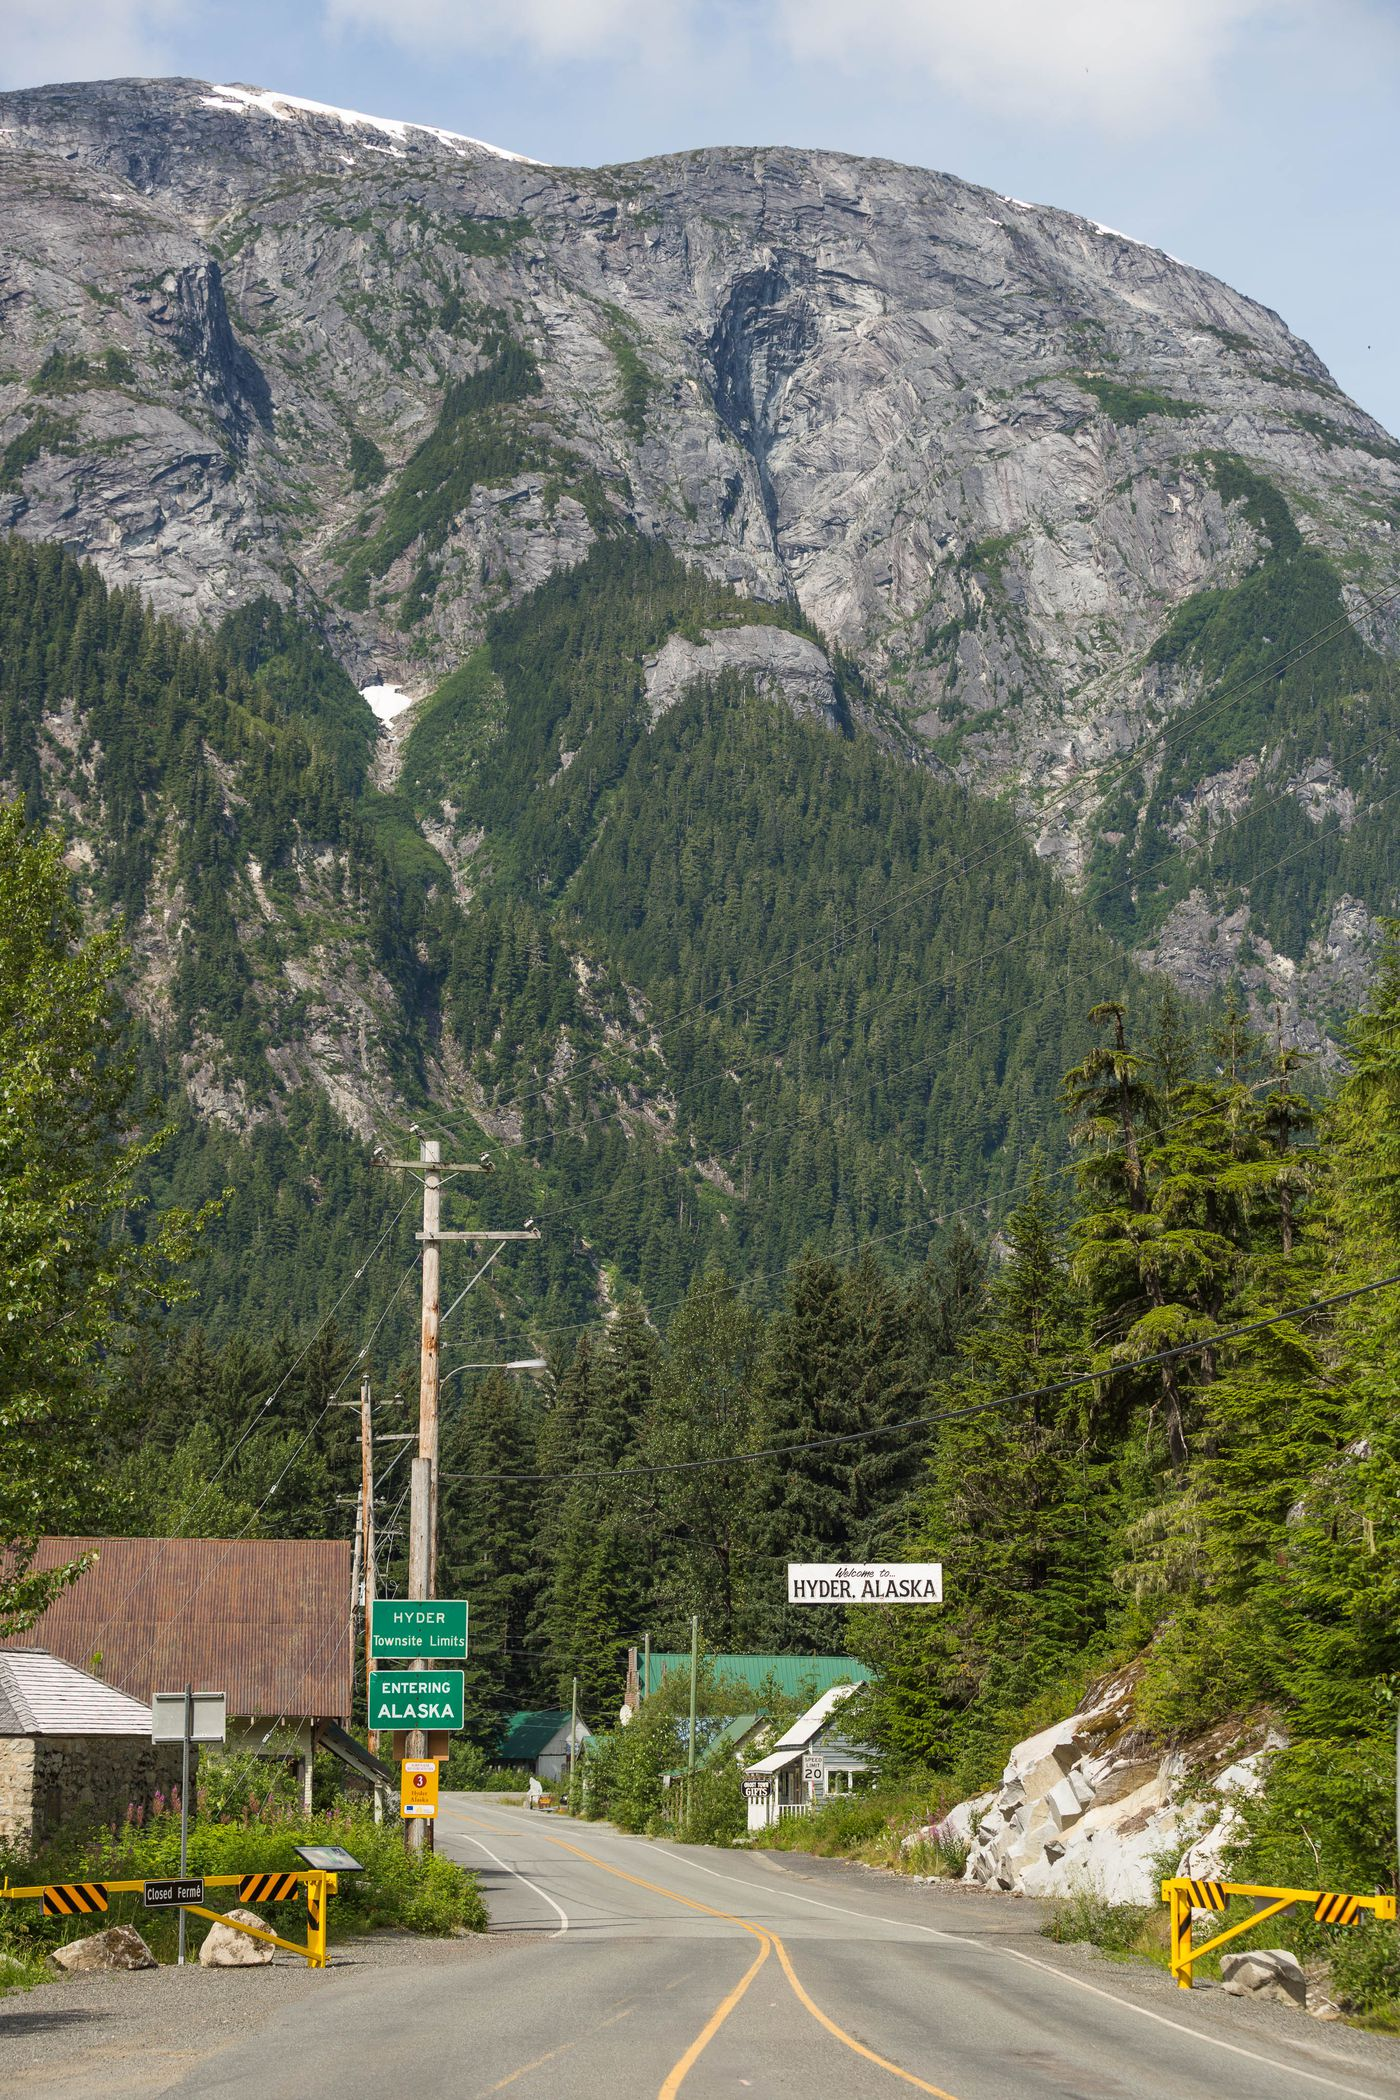 The US-Canada border at Hyder, Alaska on July 1, 2015. The town, with 84 year-round residents, is closely tied to nearby Stewart, British Columbia.